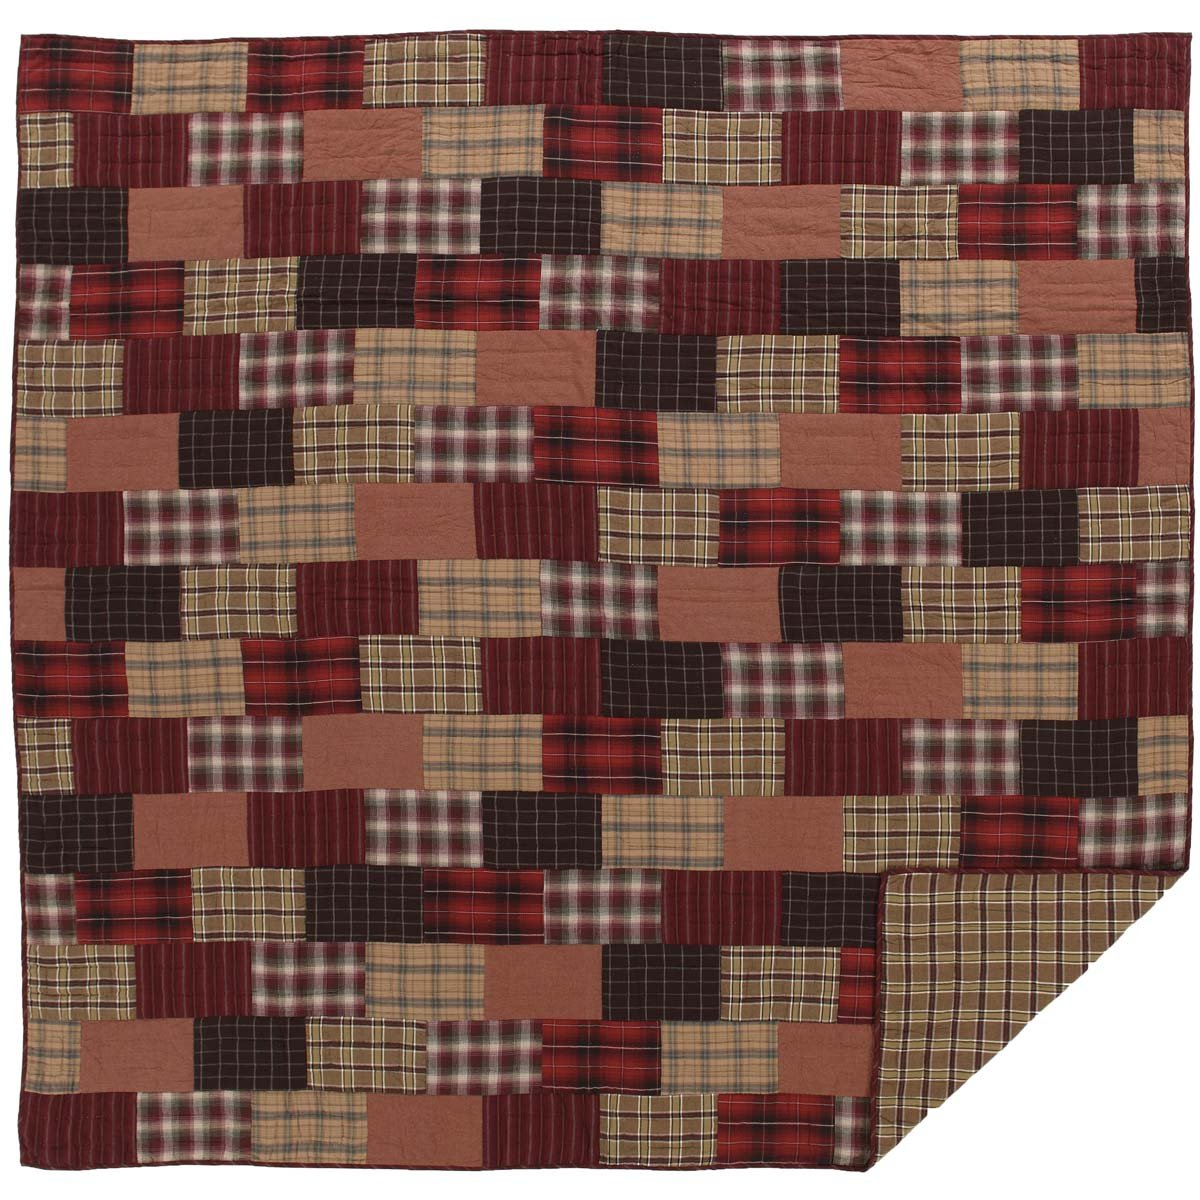 VHC Brands Rustic & Lodge Bedding - Wyatt Red Quilt, Queen, by VHC Brands (Image #1)